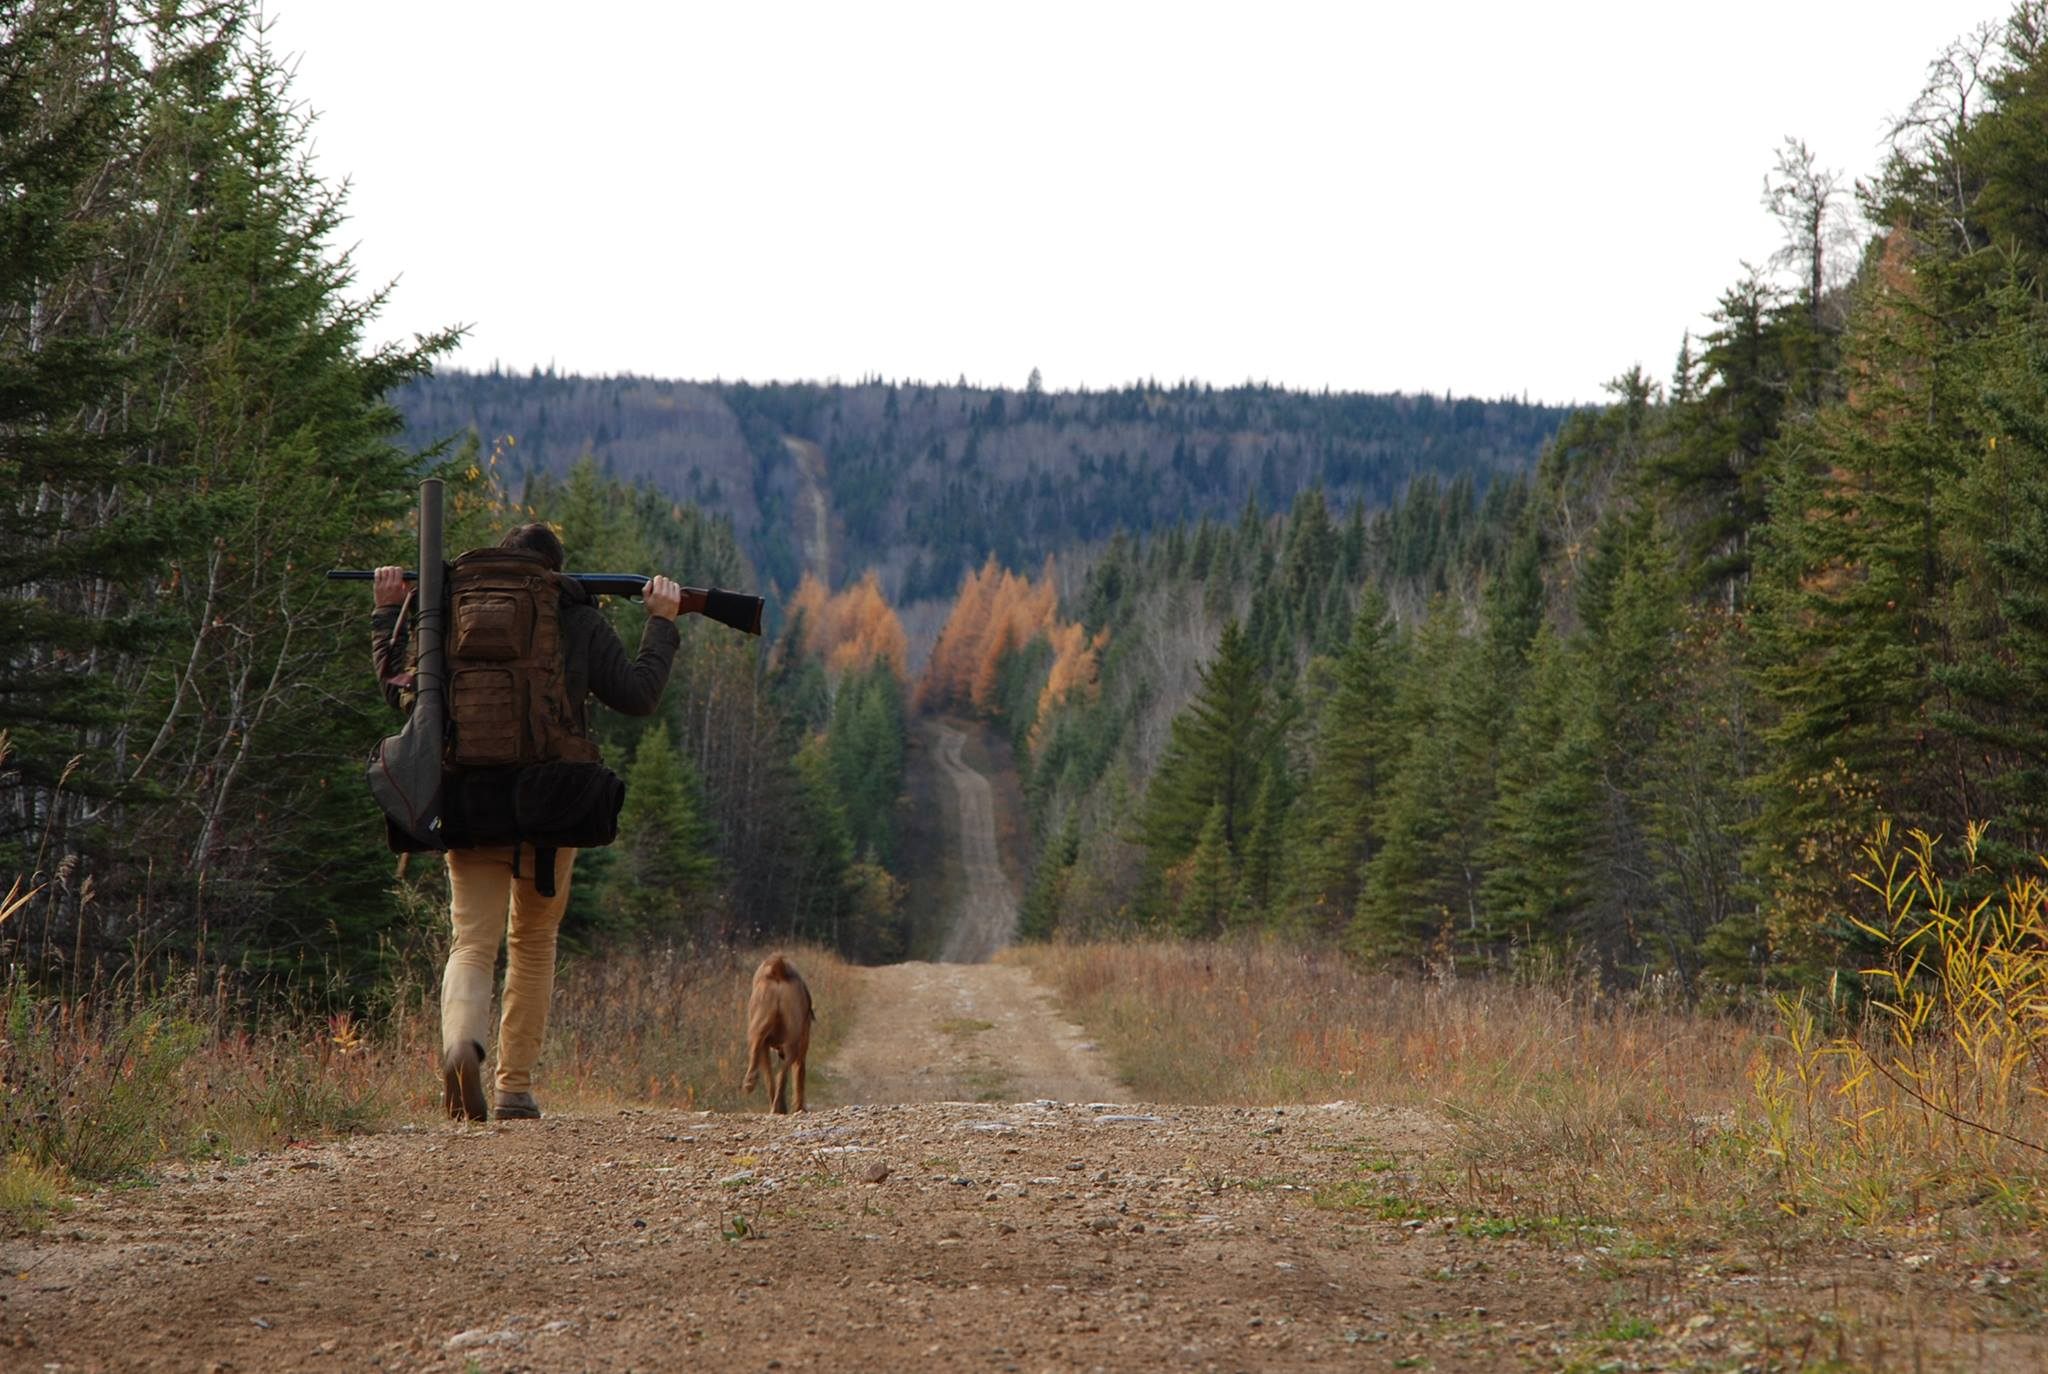 In the spirit of Les Stroud, I had to include a picture of us walking out into the wilderness.